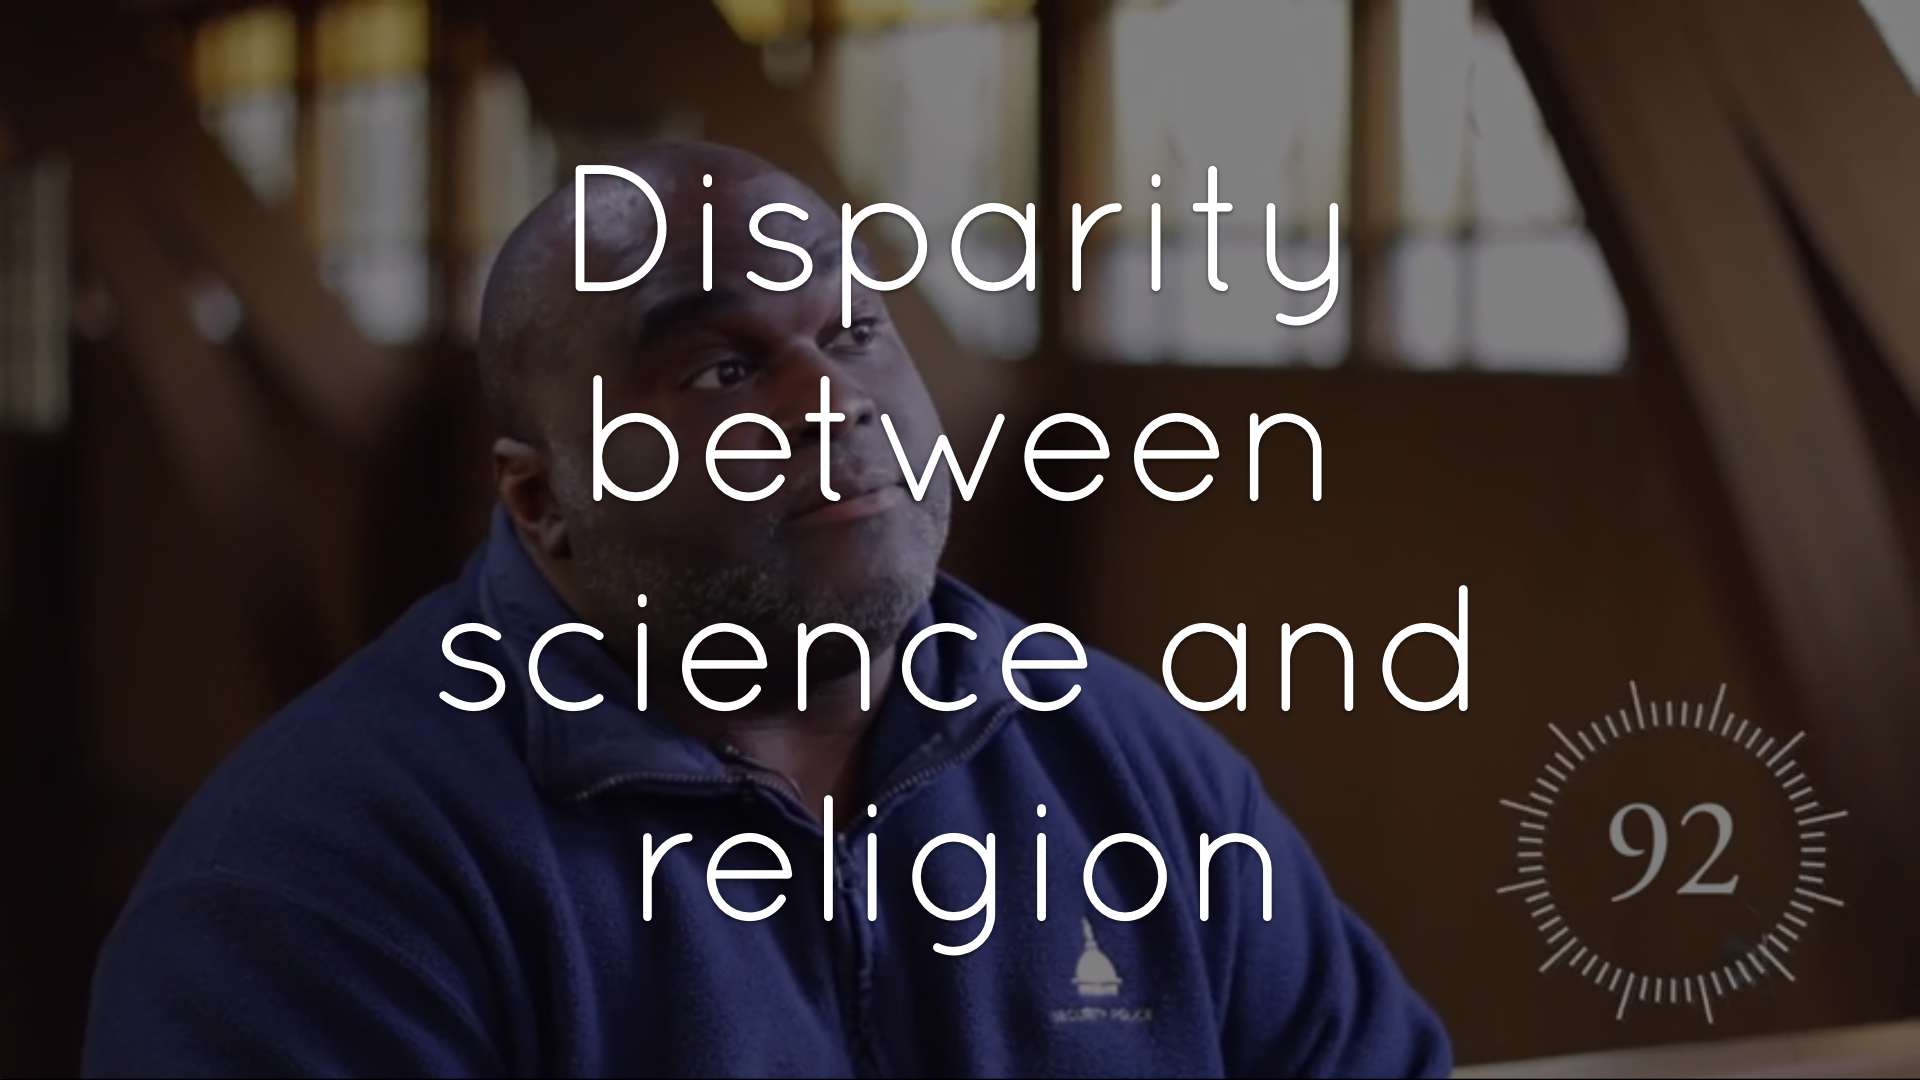 Can God and science coexist?